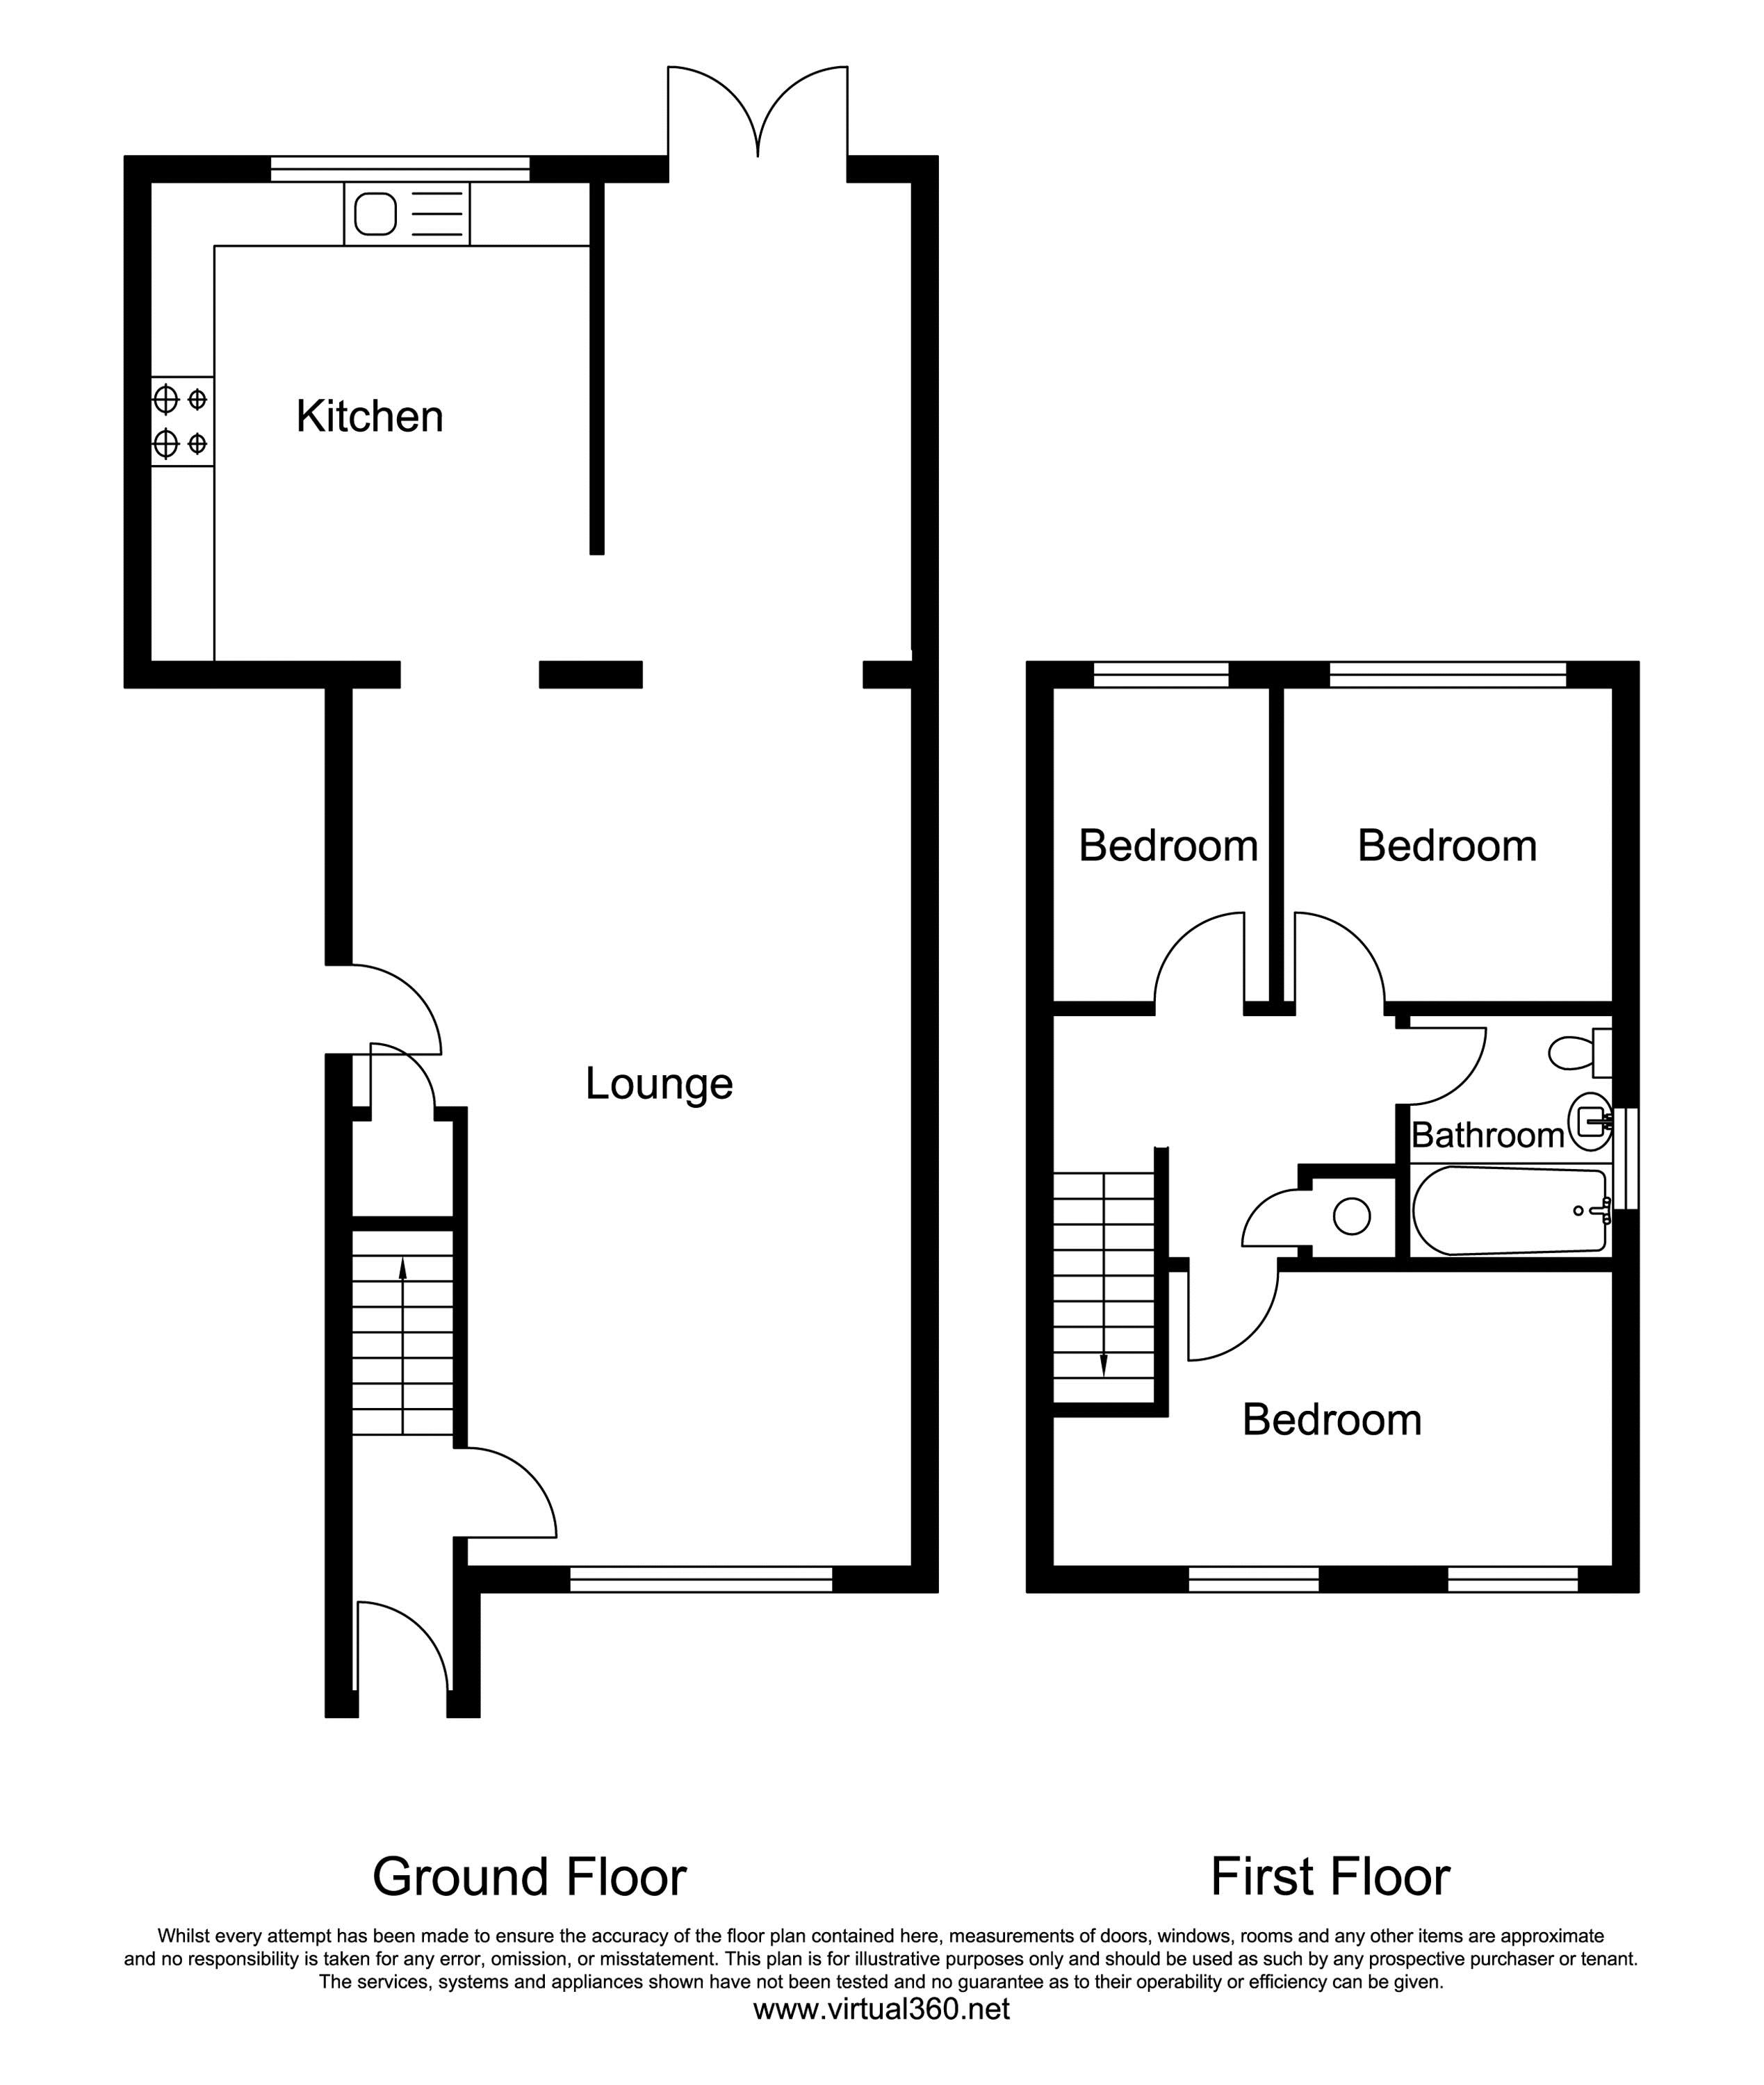 Tamar Close, Congleton floor plan